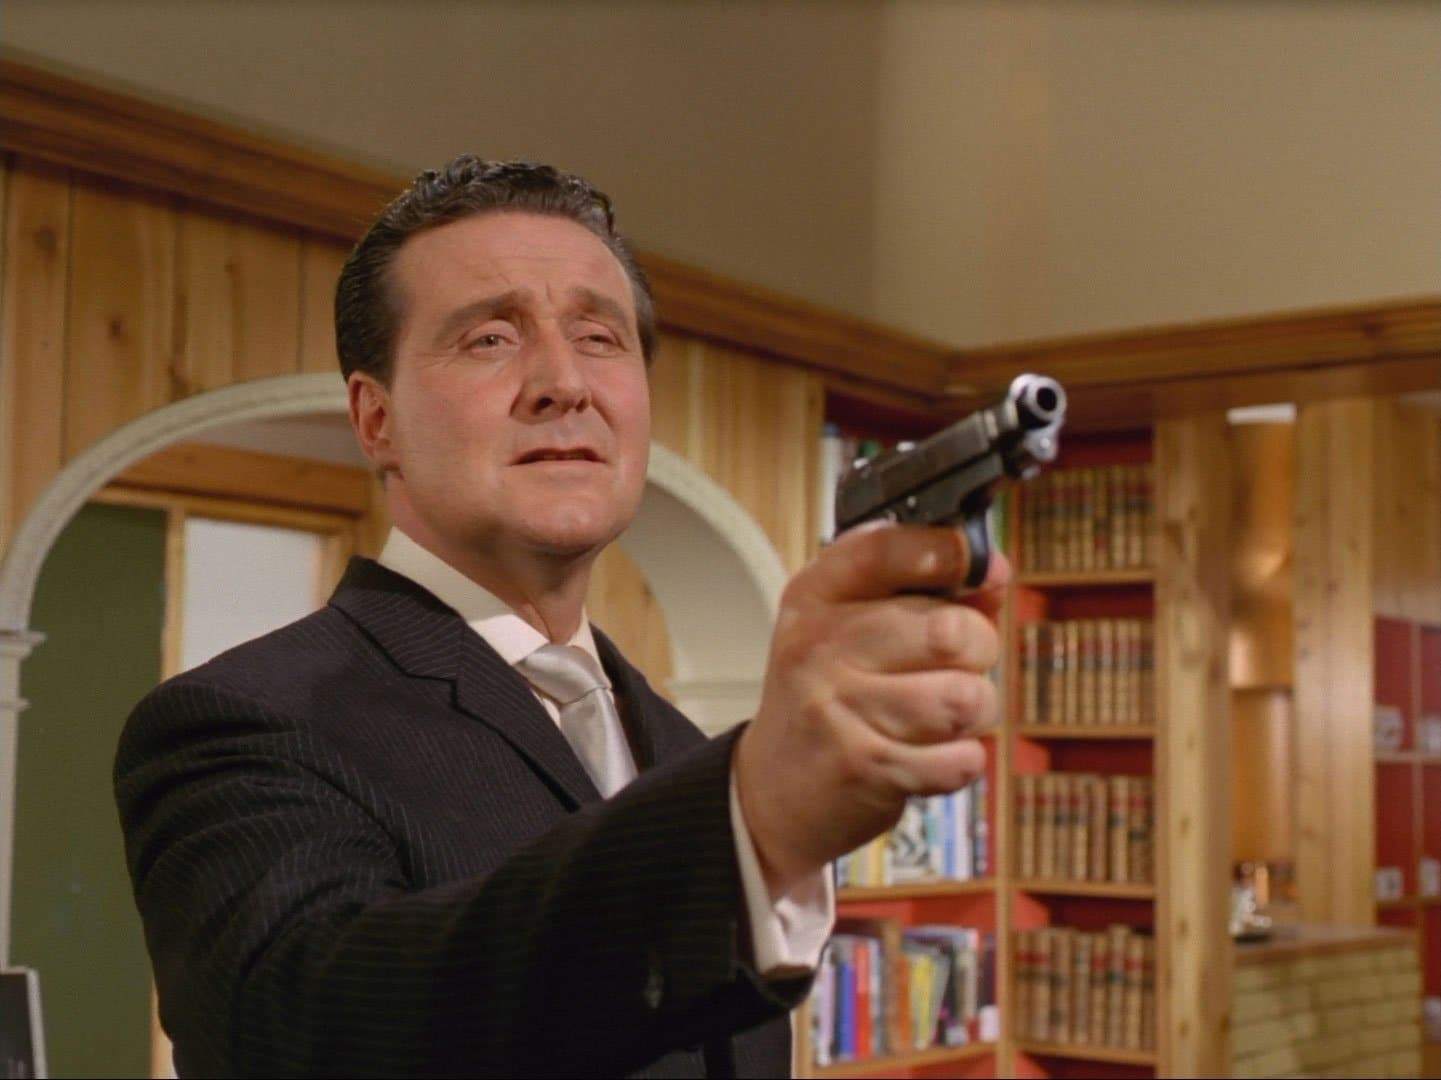 John Steed with a gun